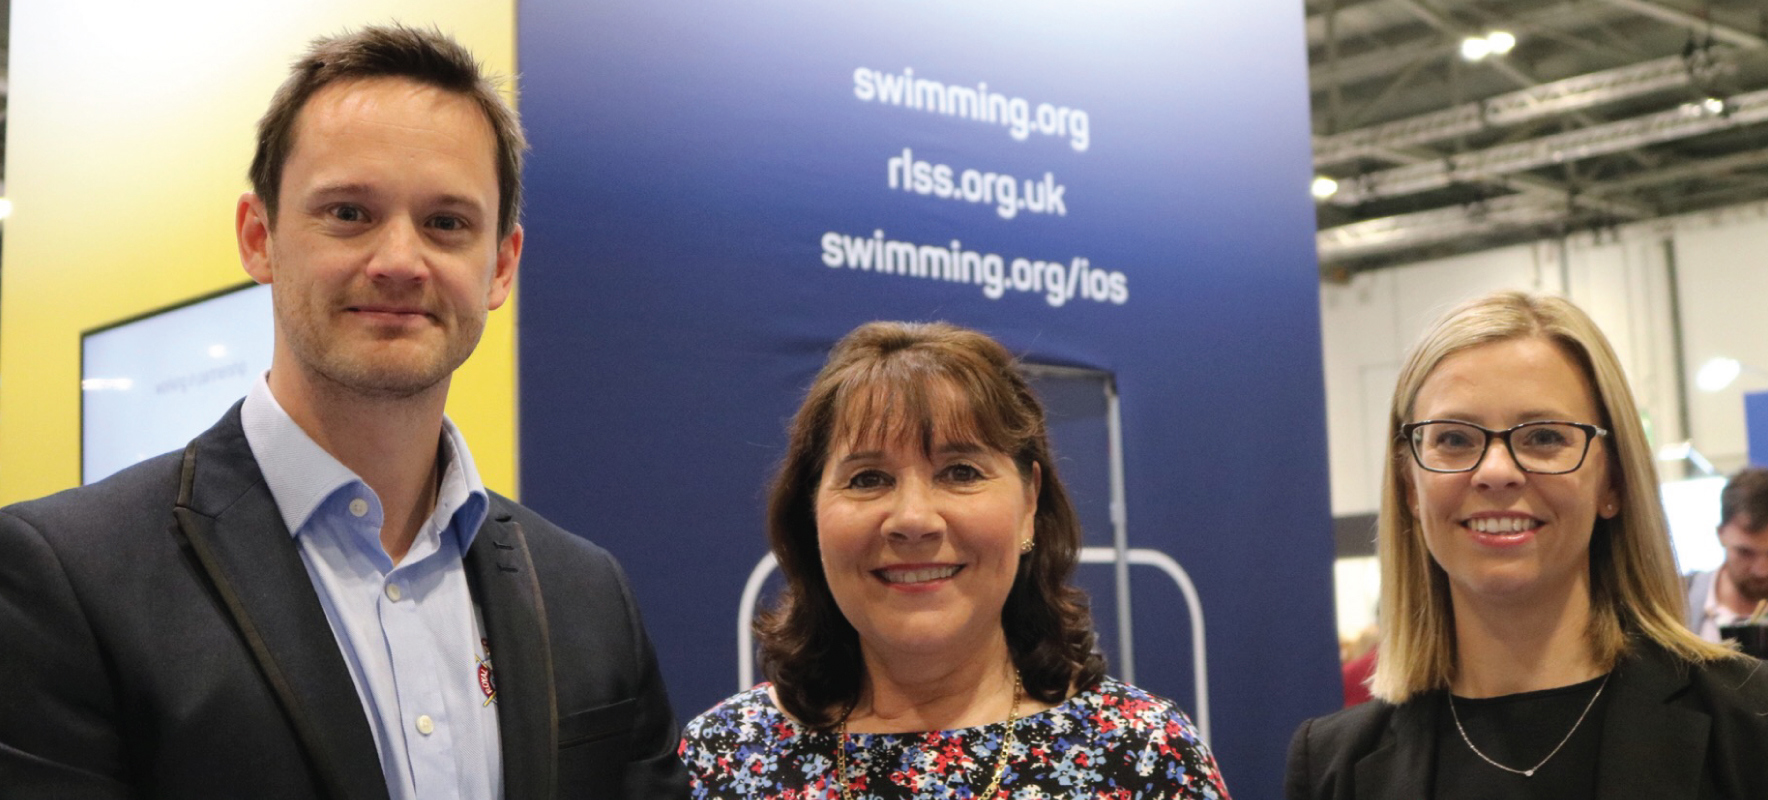 Market leaders in learn-to-swim and lifeguarding announce innovative new partnership